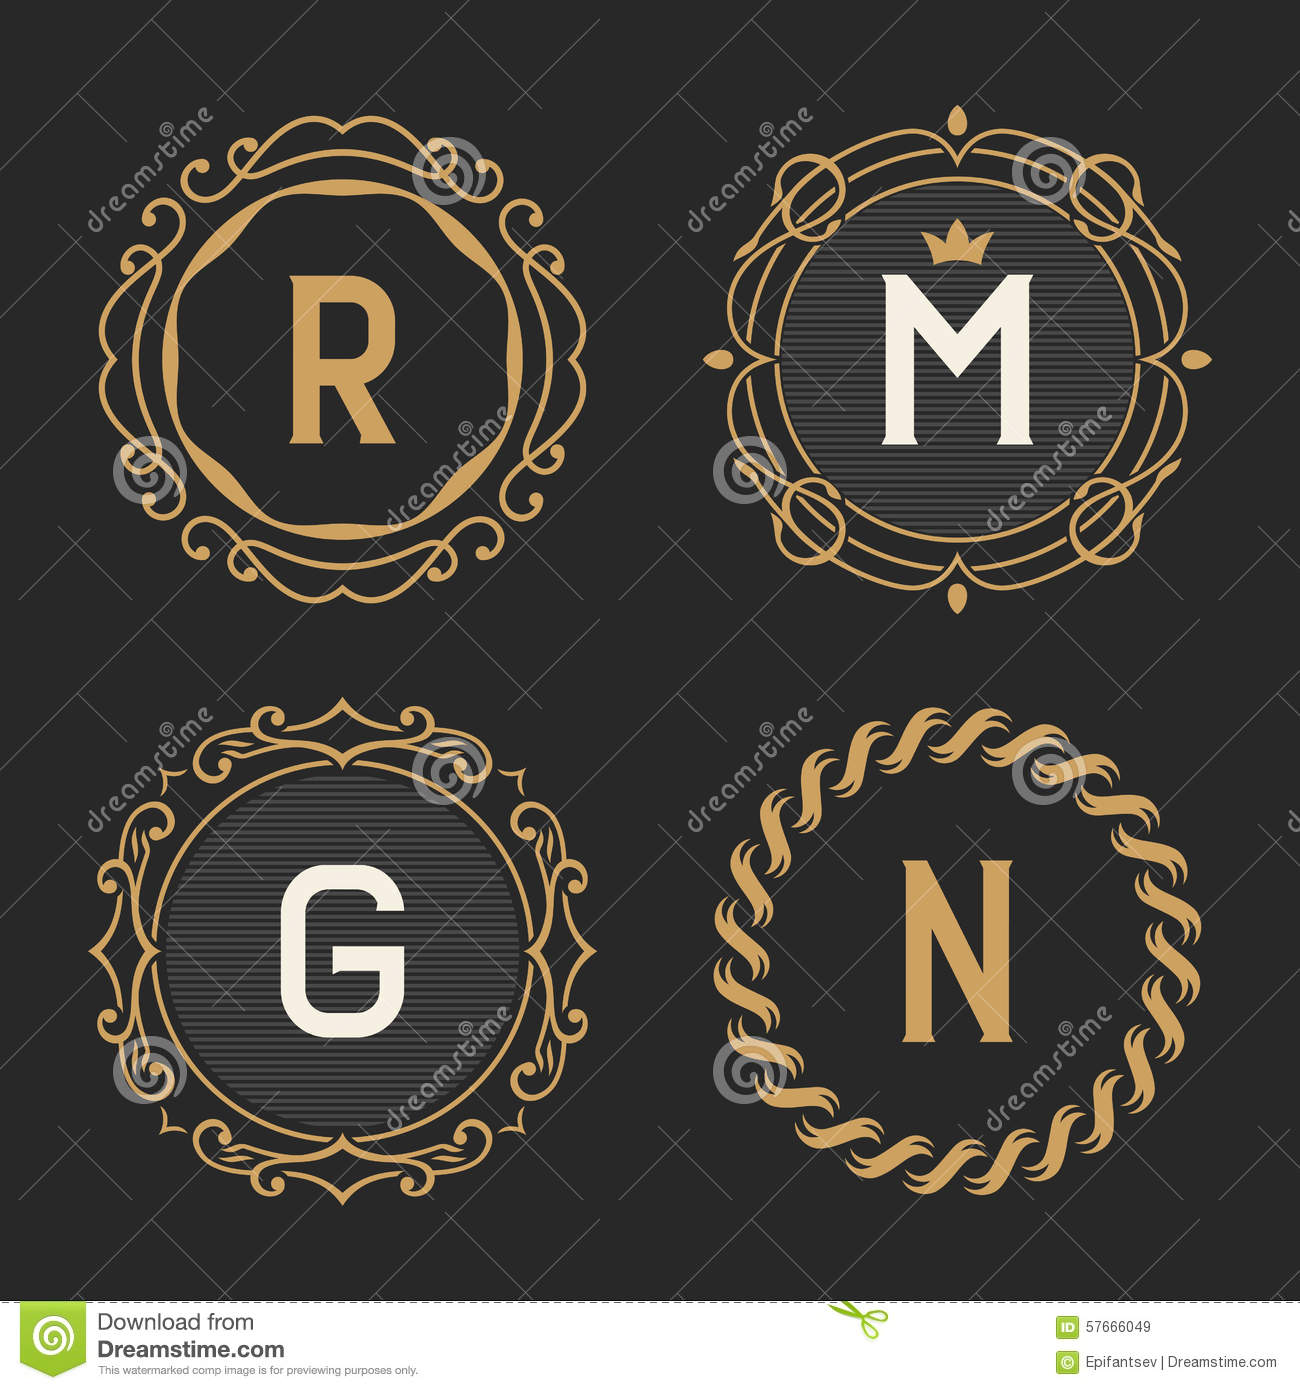 The set of stylish vintage monogram emblem and logo for Boutique hotel logo